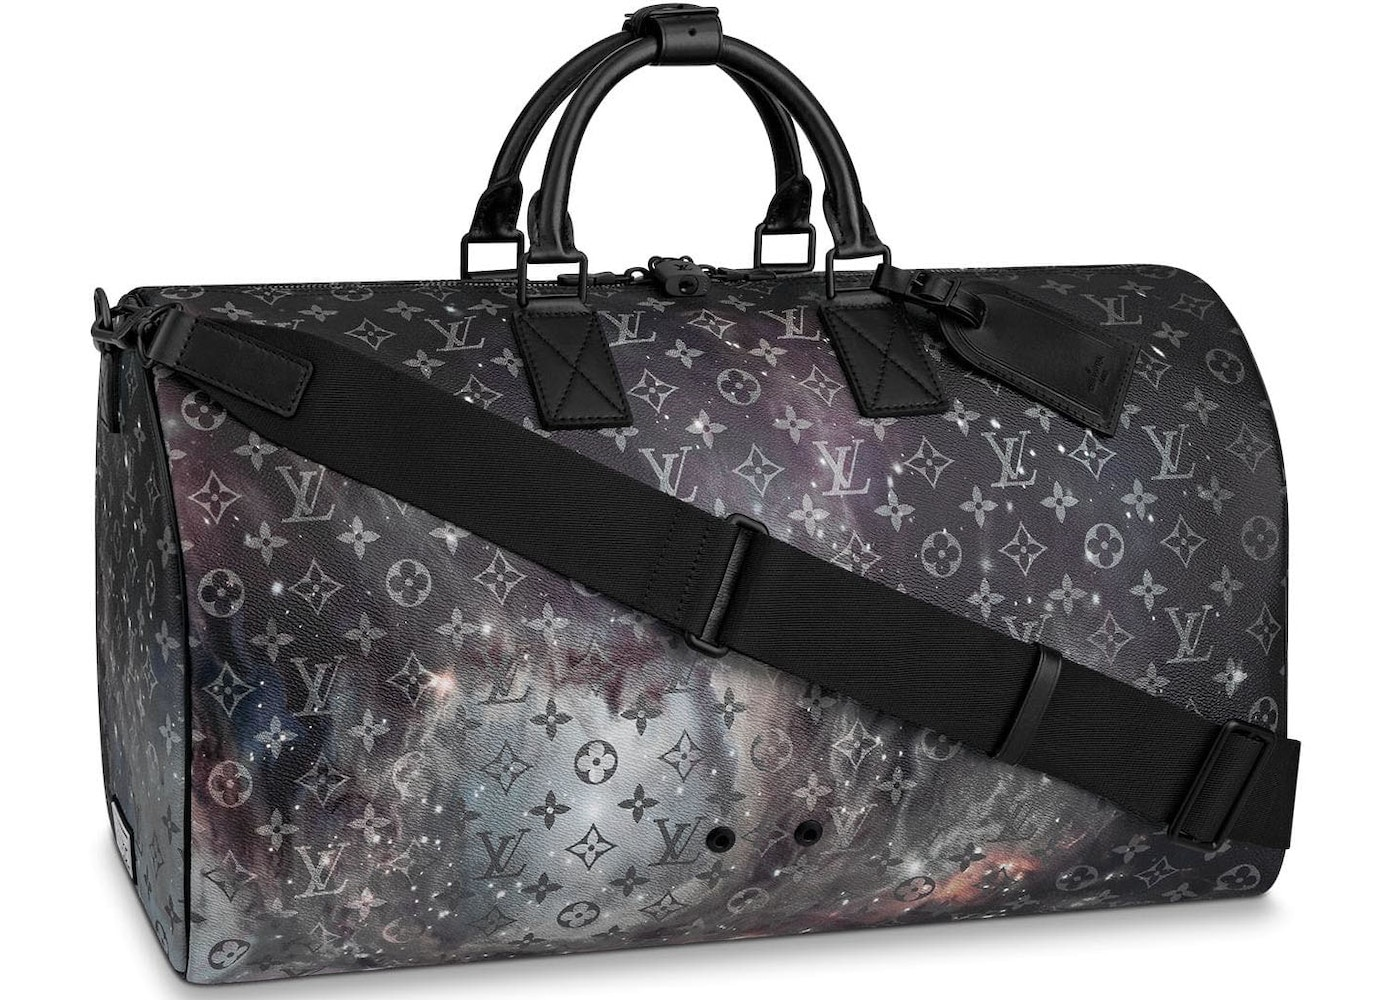 70f8b3a5c74 Louis Vuitton Keepall Bandouliere Monogram Galaxy 50 Black Multicolor